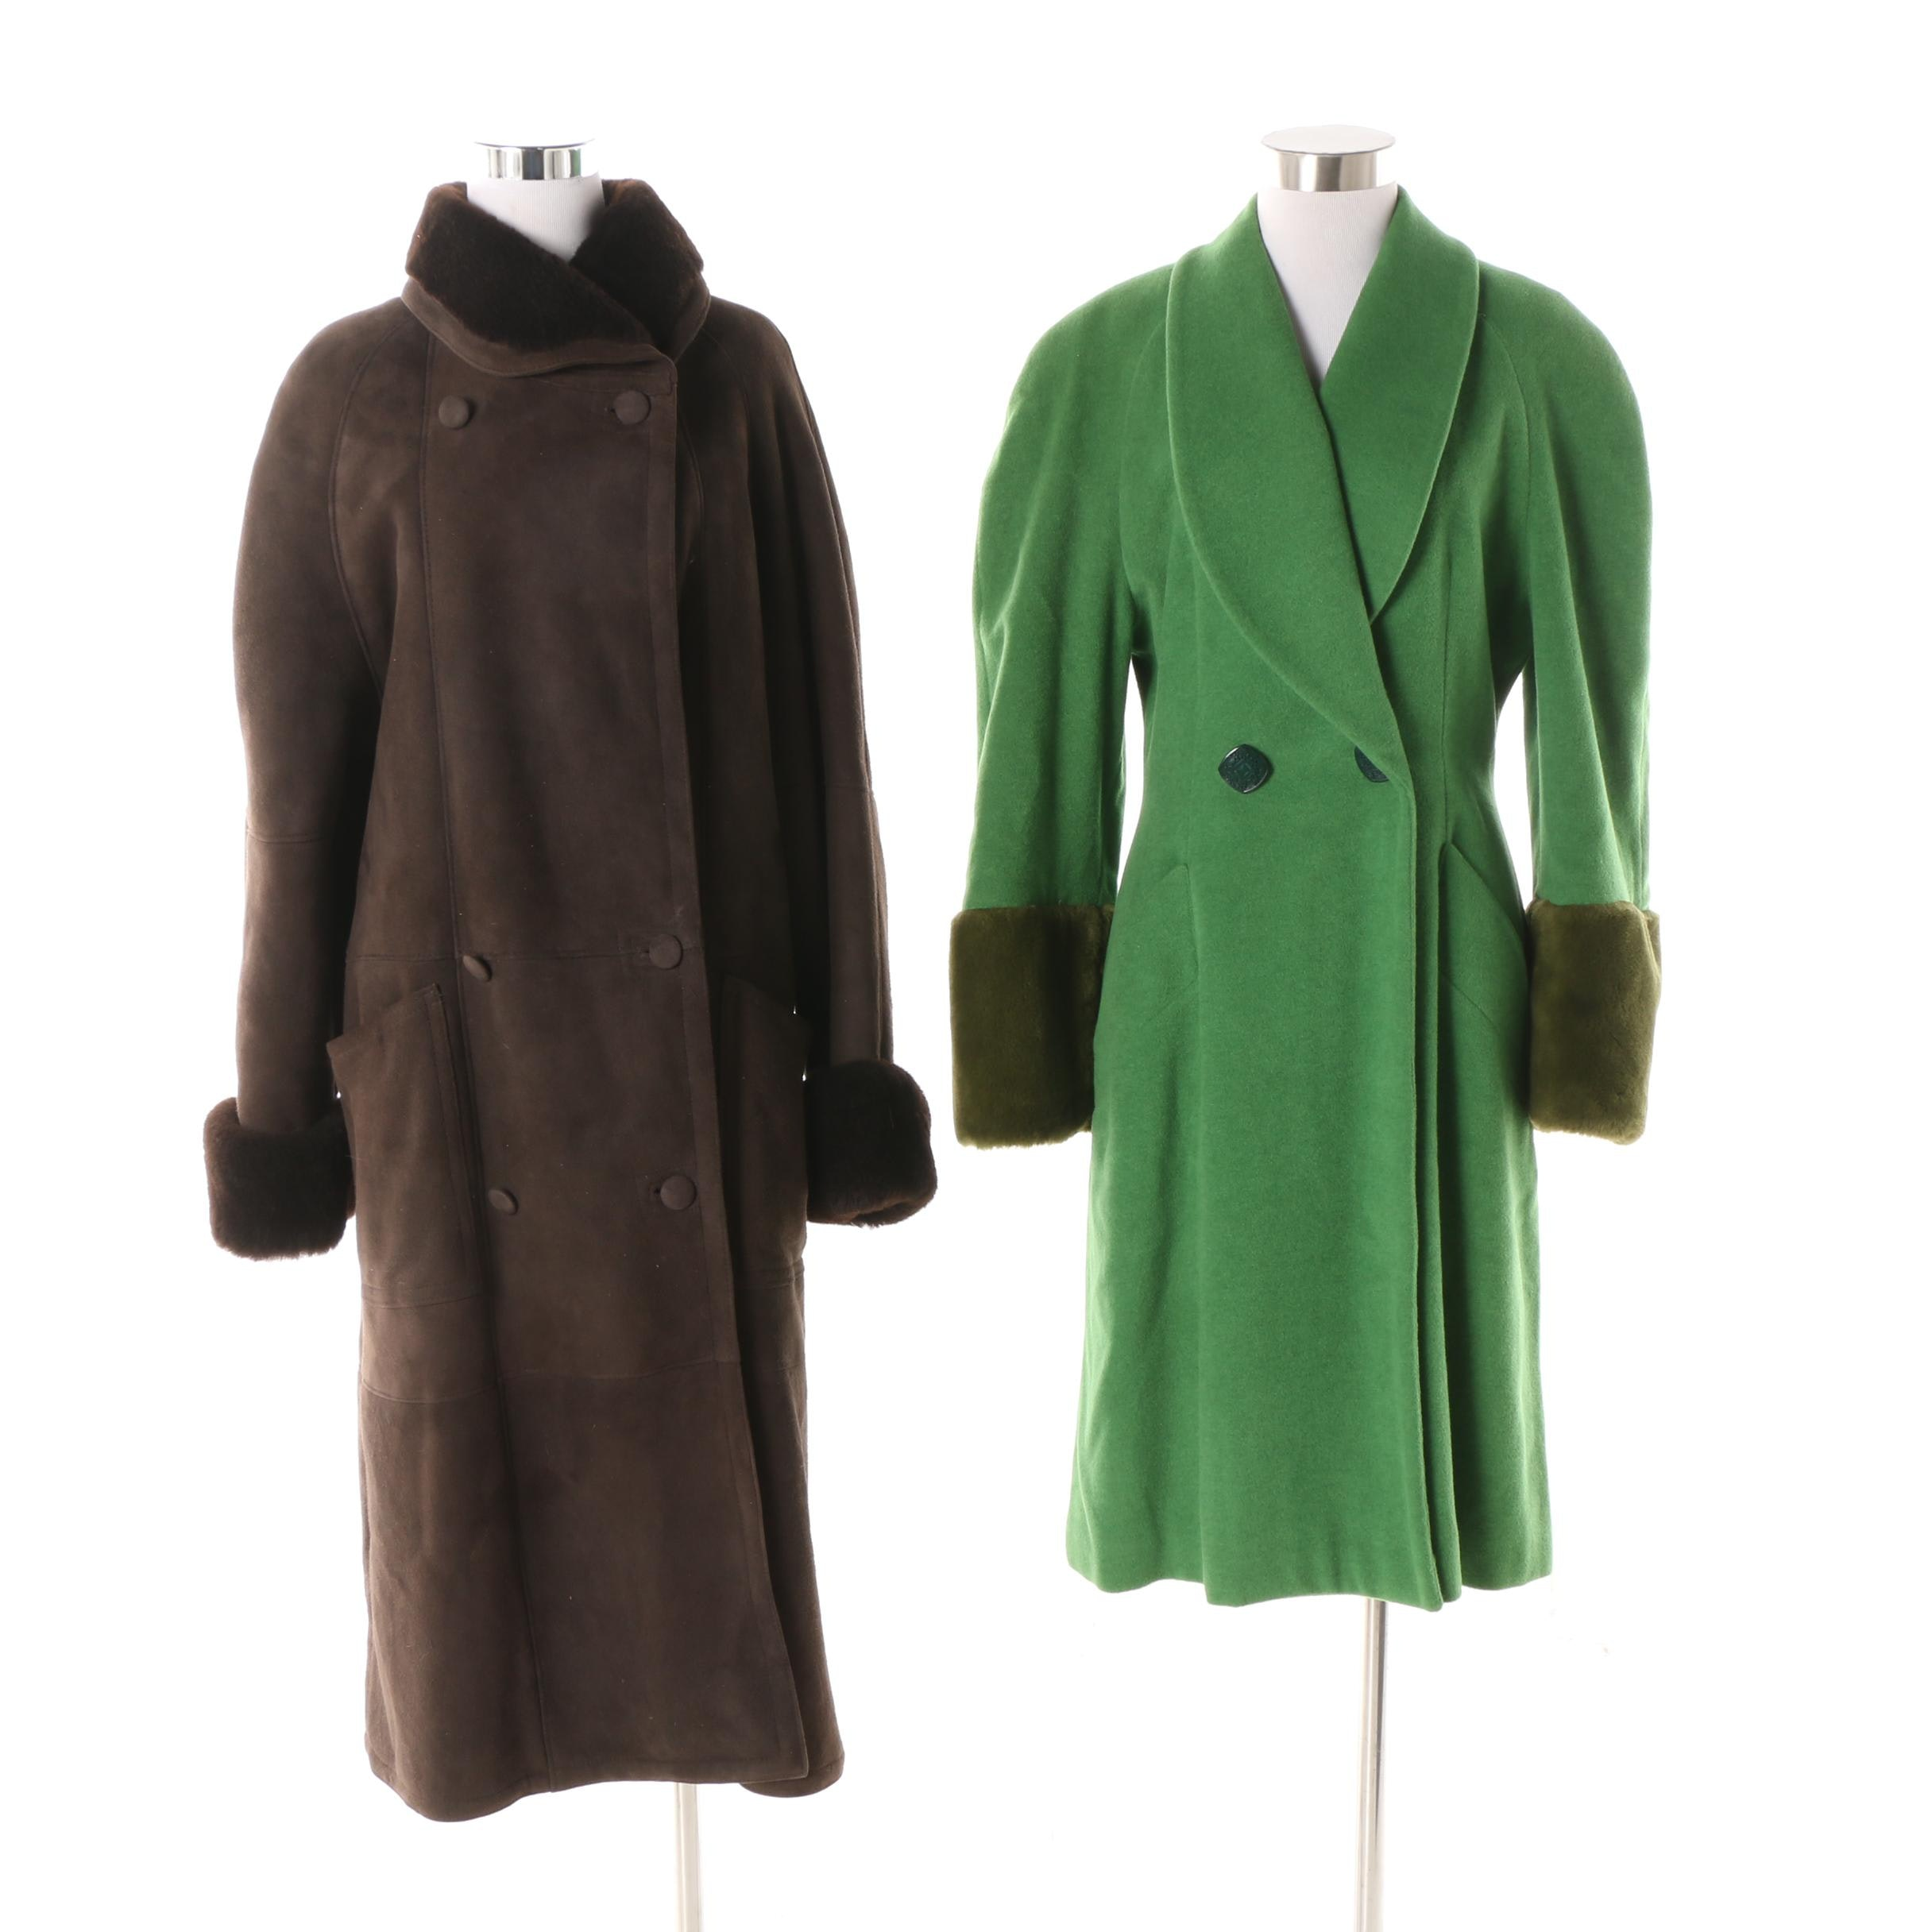 Lolita Lempicka Wool Blend Coat with Robert Arnold Mouton Fur Lined Suede Coat